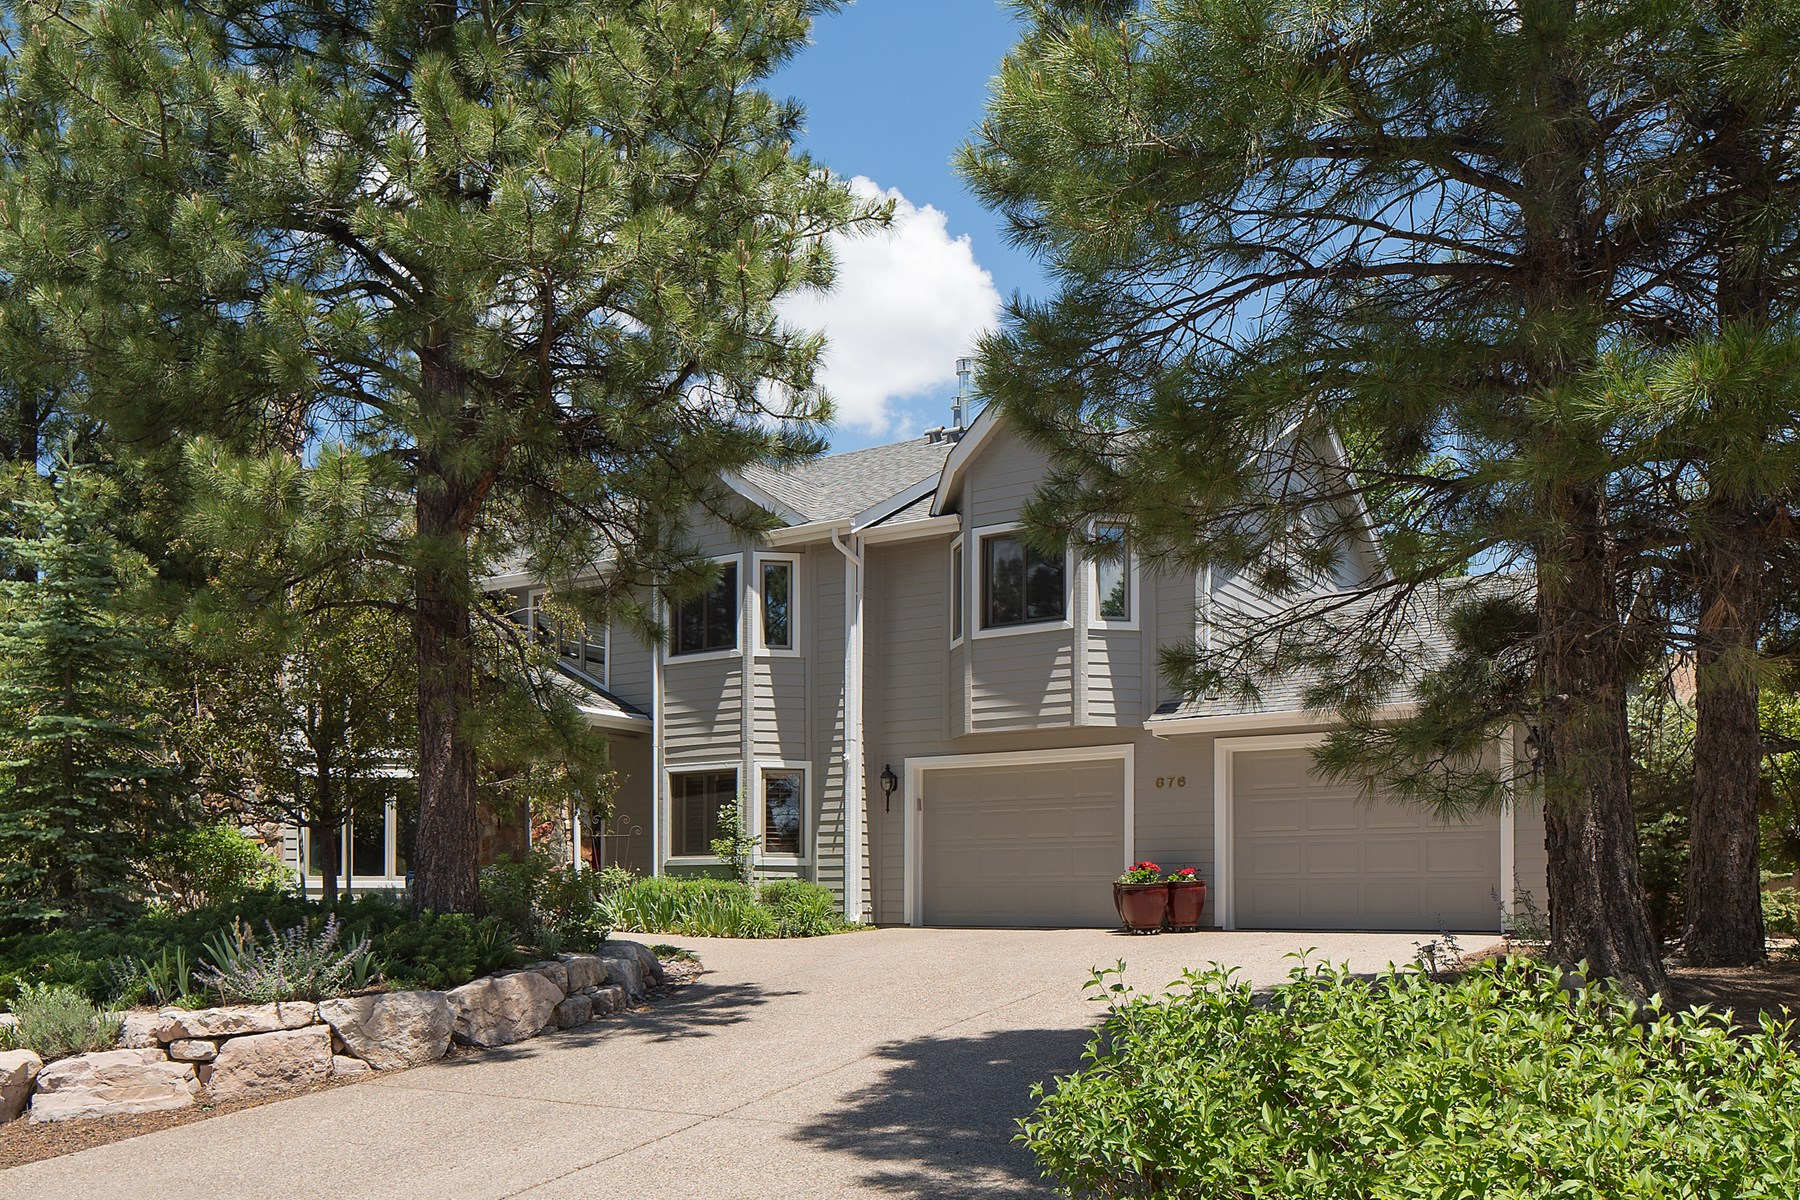 Moradia para Venda às Amazing Amberwood Home 676 N Fox Hill Rd Flagstaff, Arizona, 86004 Estados Unidos